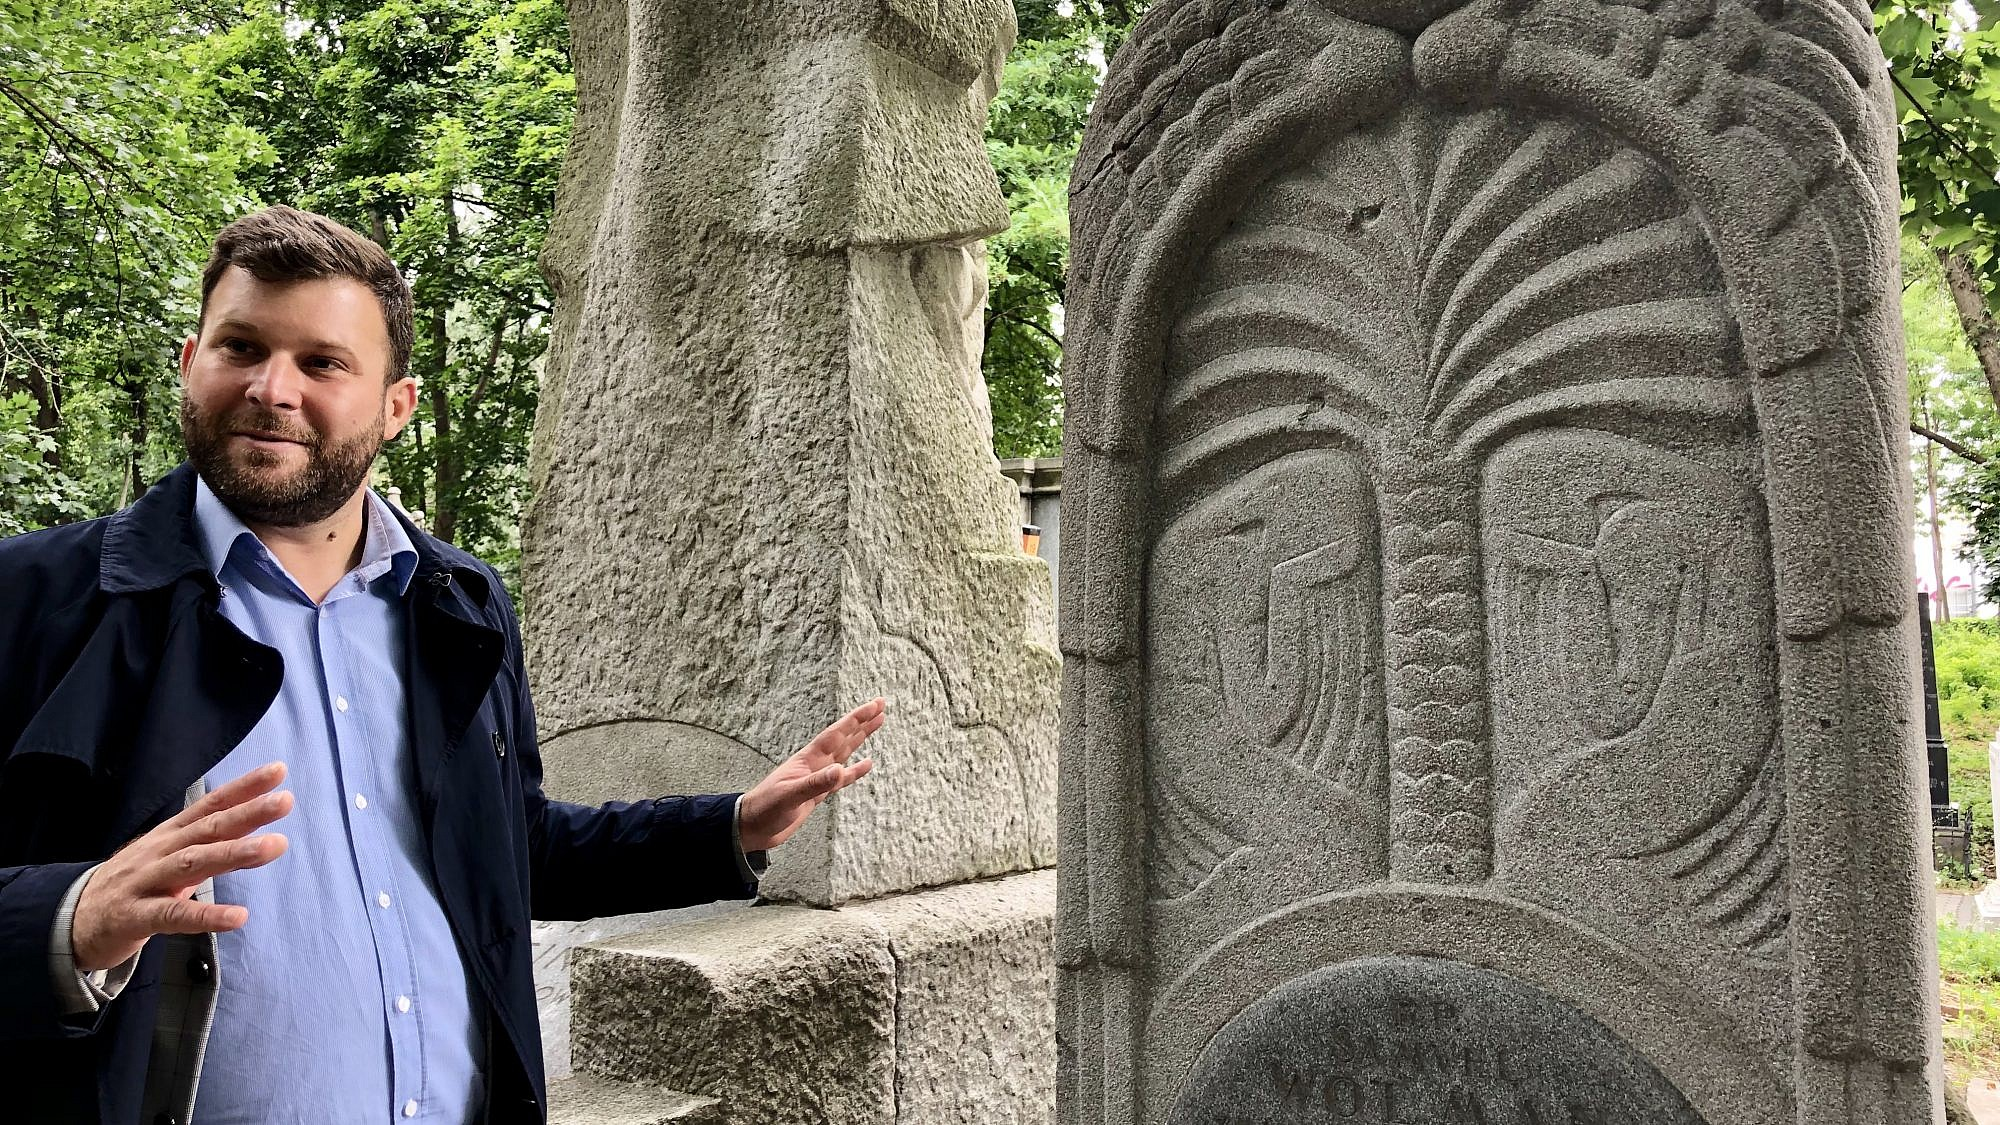 Michał Laszczkowski, CEO of Poland's Cultural Heritage Foundation, gives a tour of the Jewish cemetery in Warsaw, July 2019. Photo by Eliana Rudee.